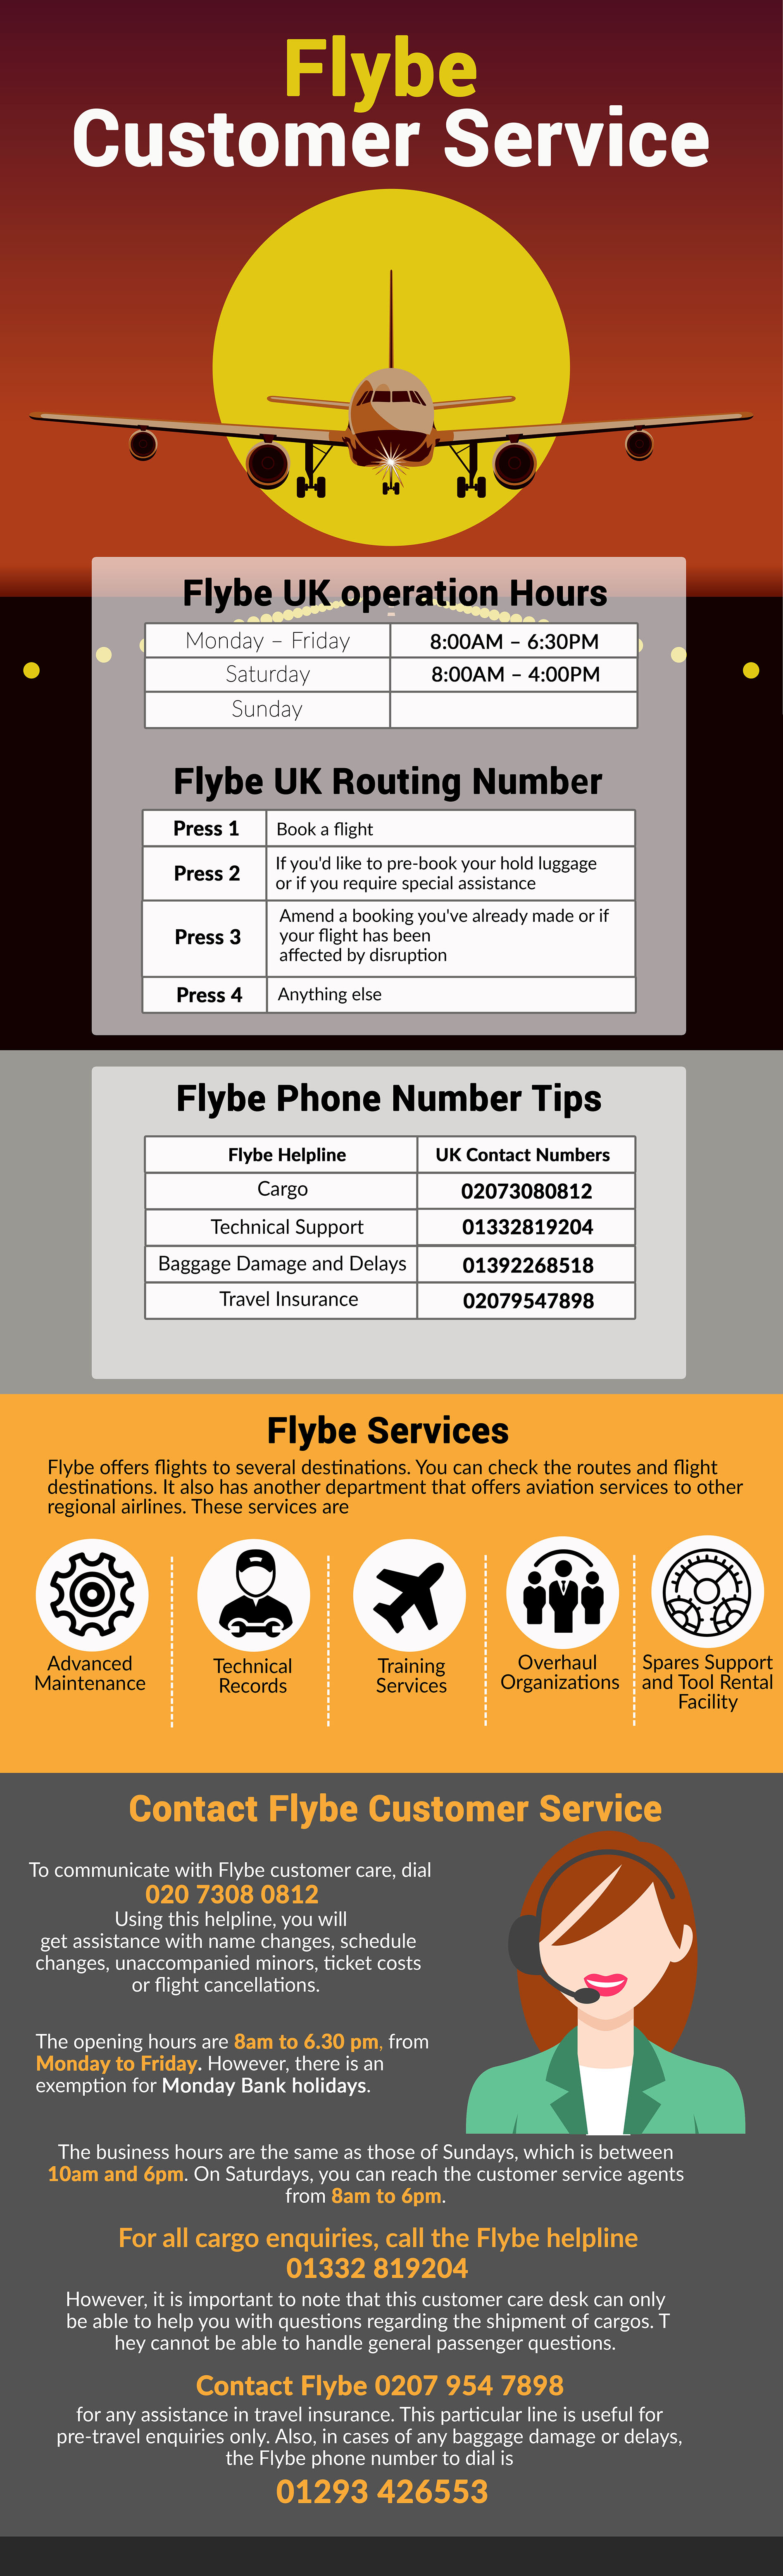 Flybe Customer Service contact phone number